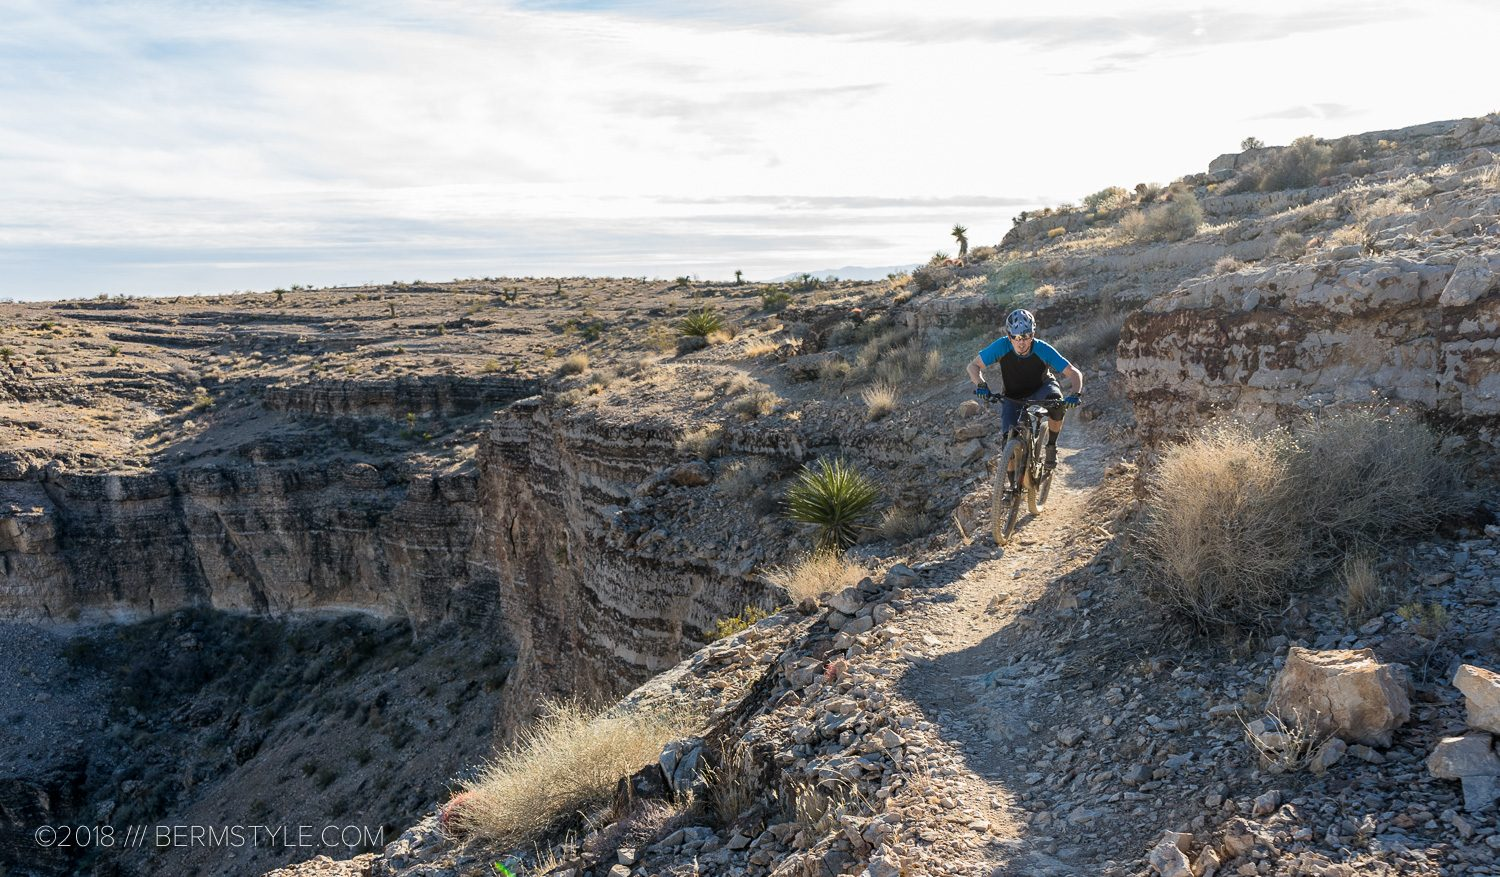 Escape from Portland: Southwest Ridge Trails — Las Vegas, Nevada